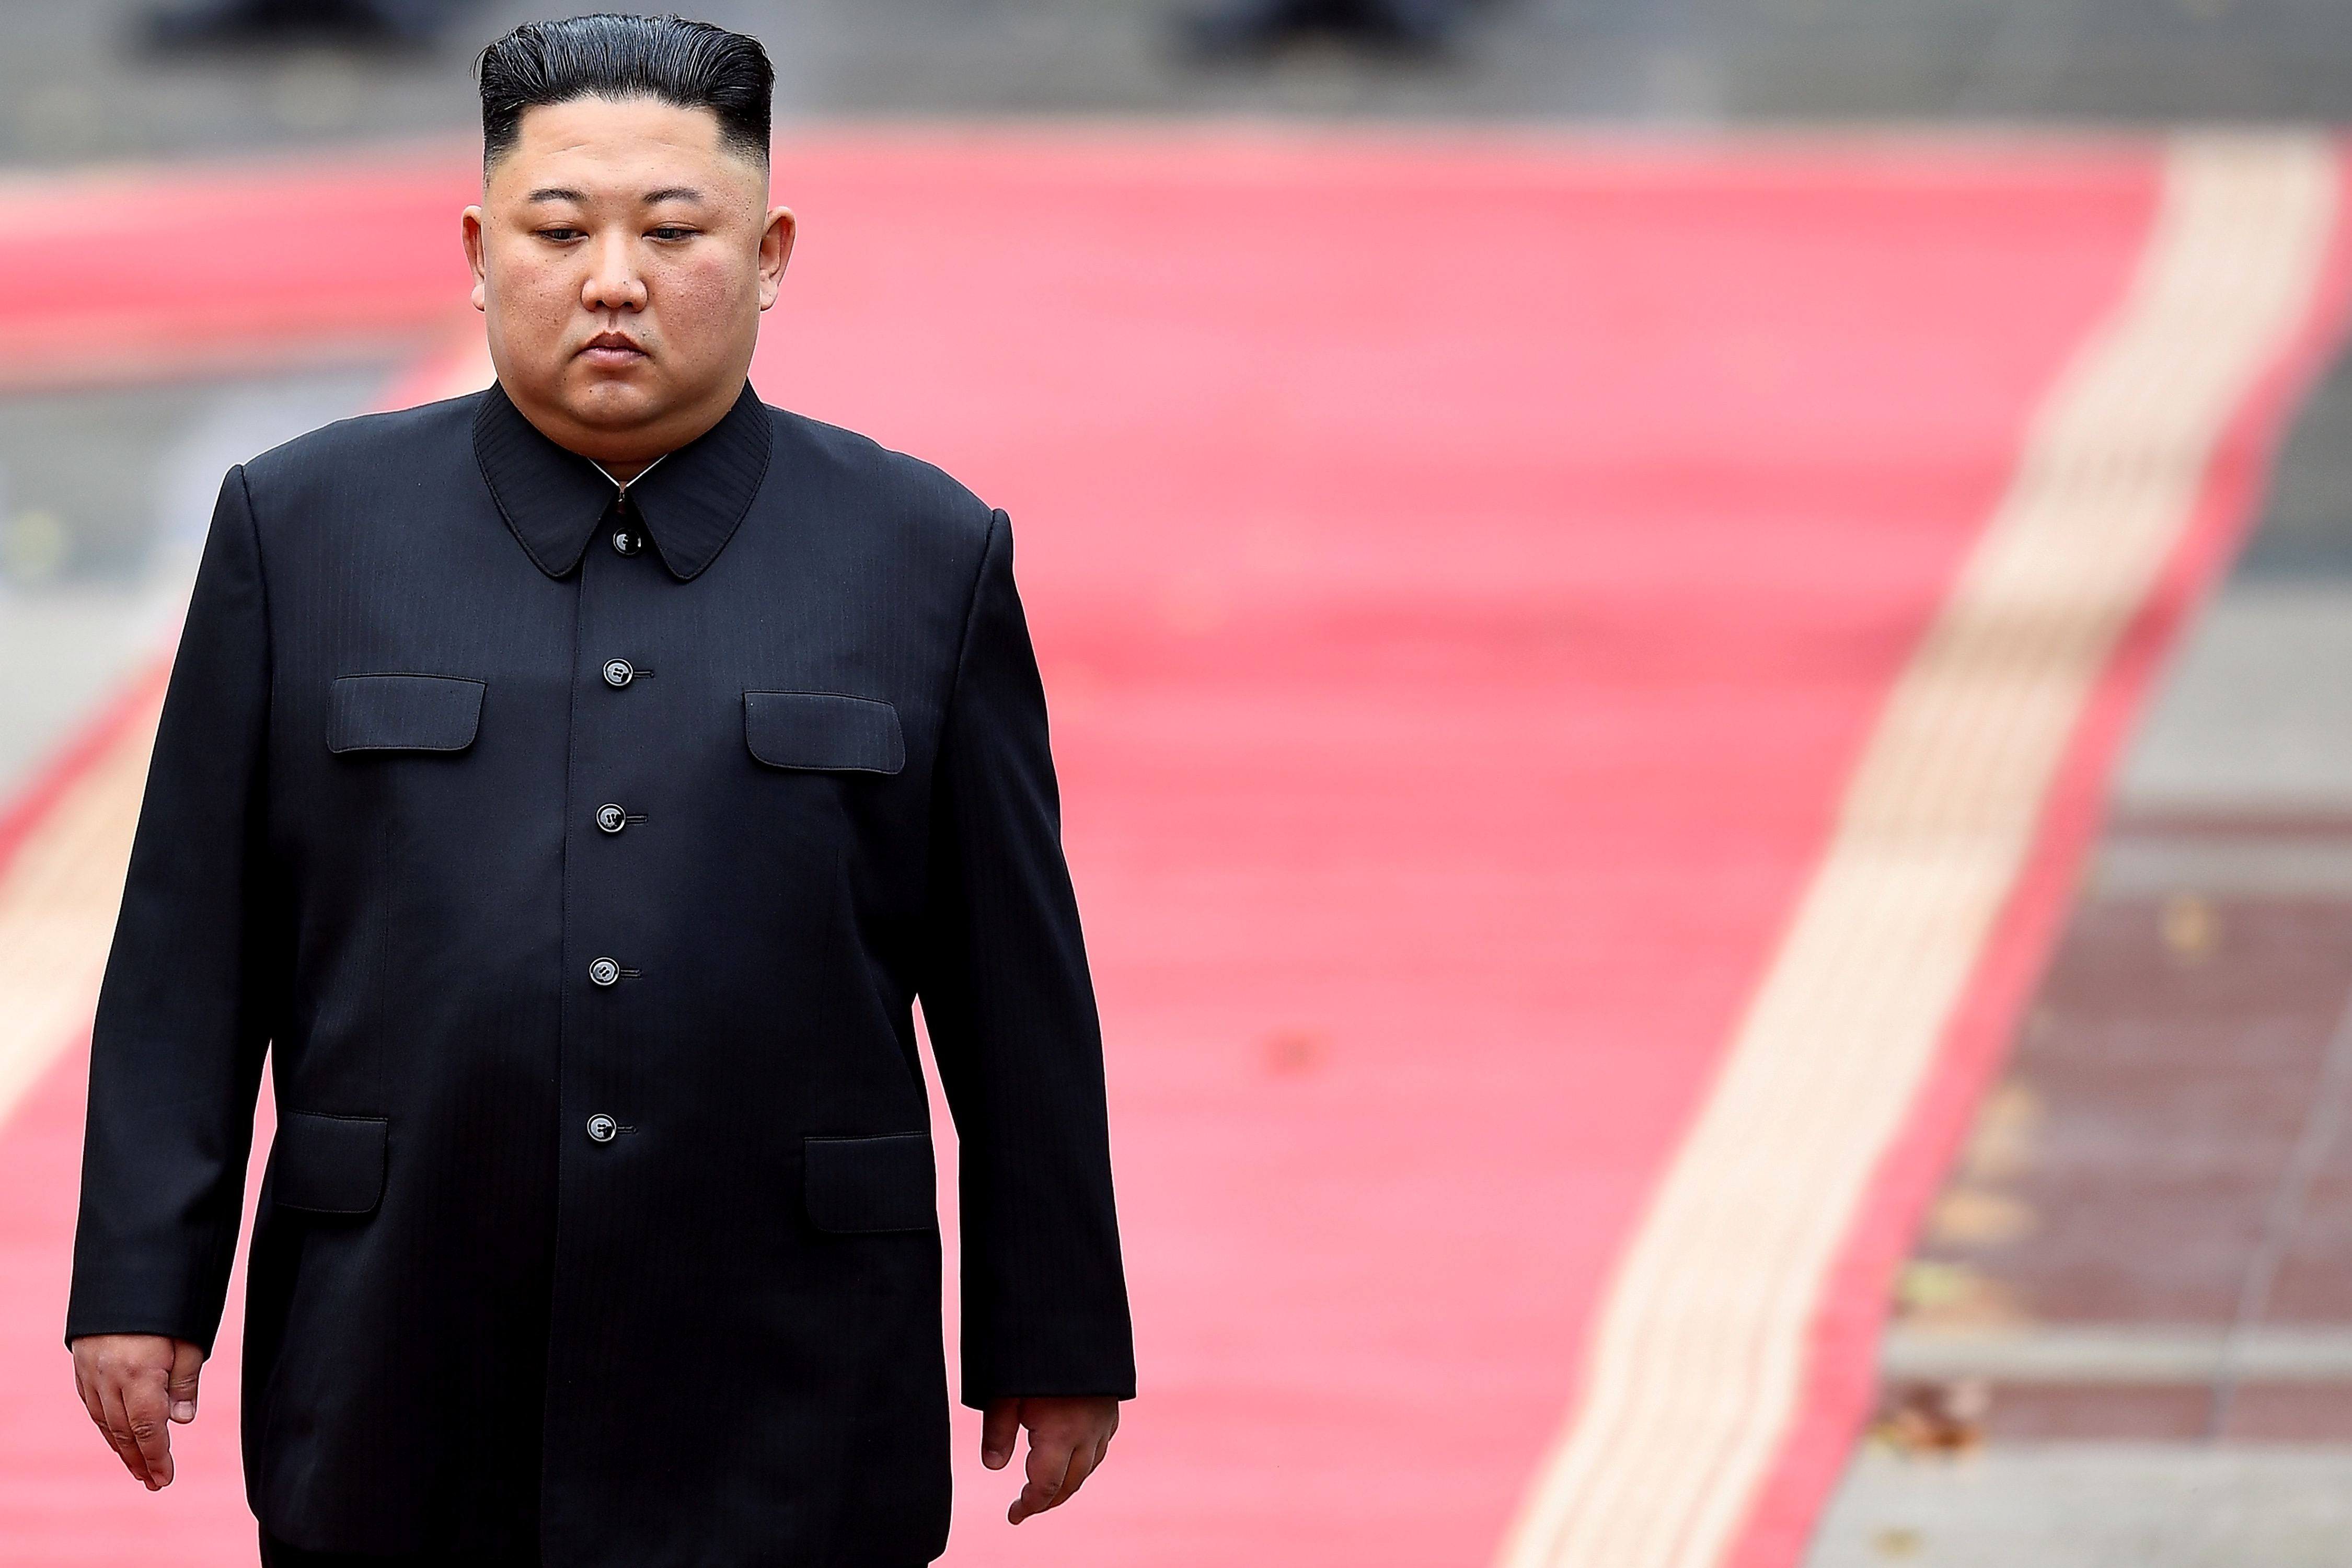 Refile: New North Korea constitution calls Kim head of state, seen as step to U.S. peace treaty